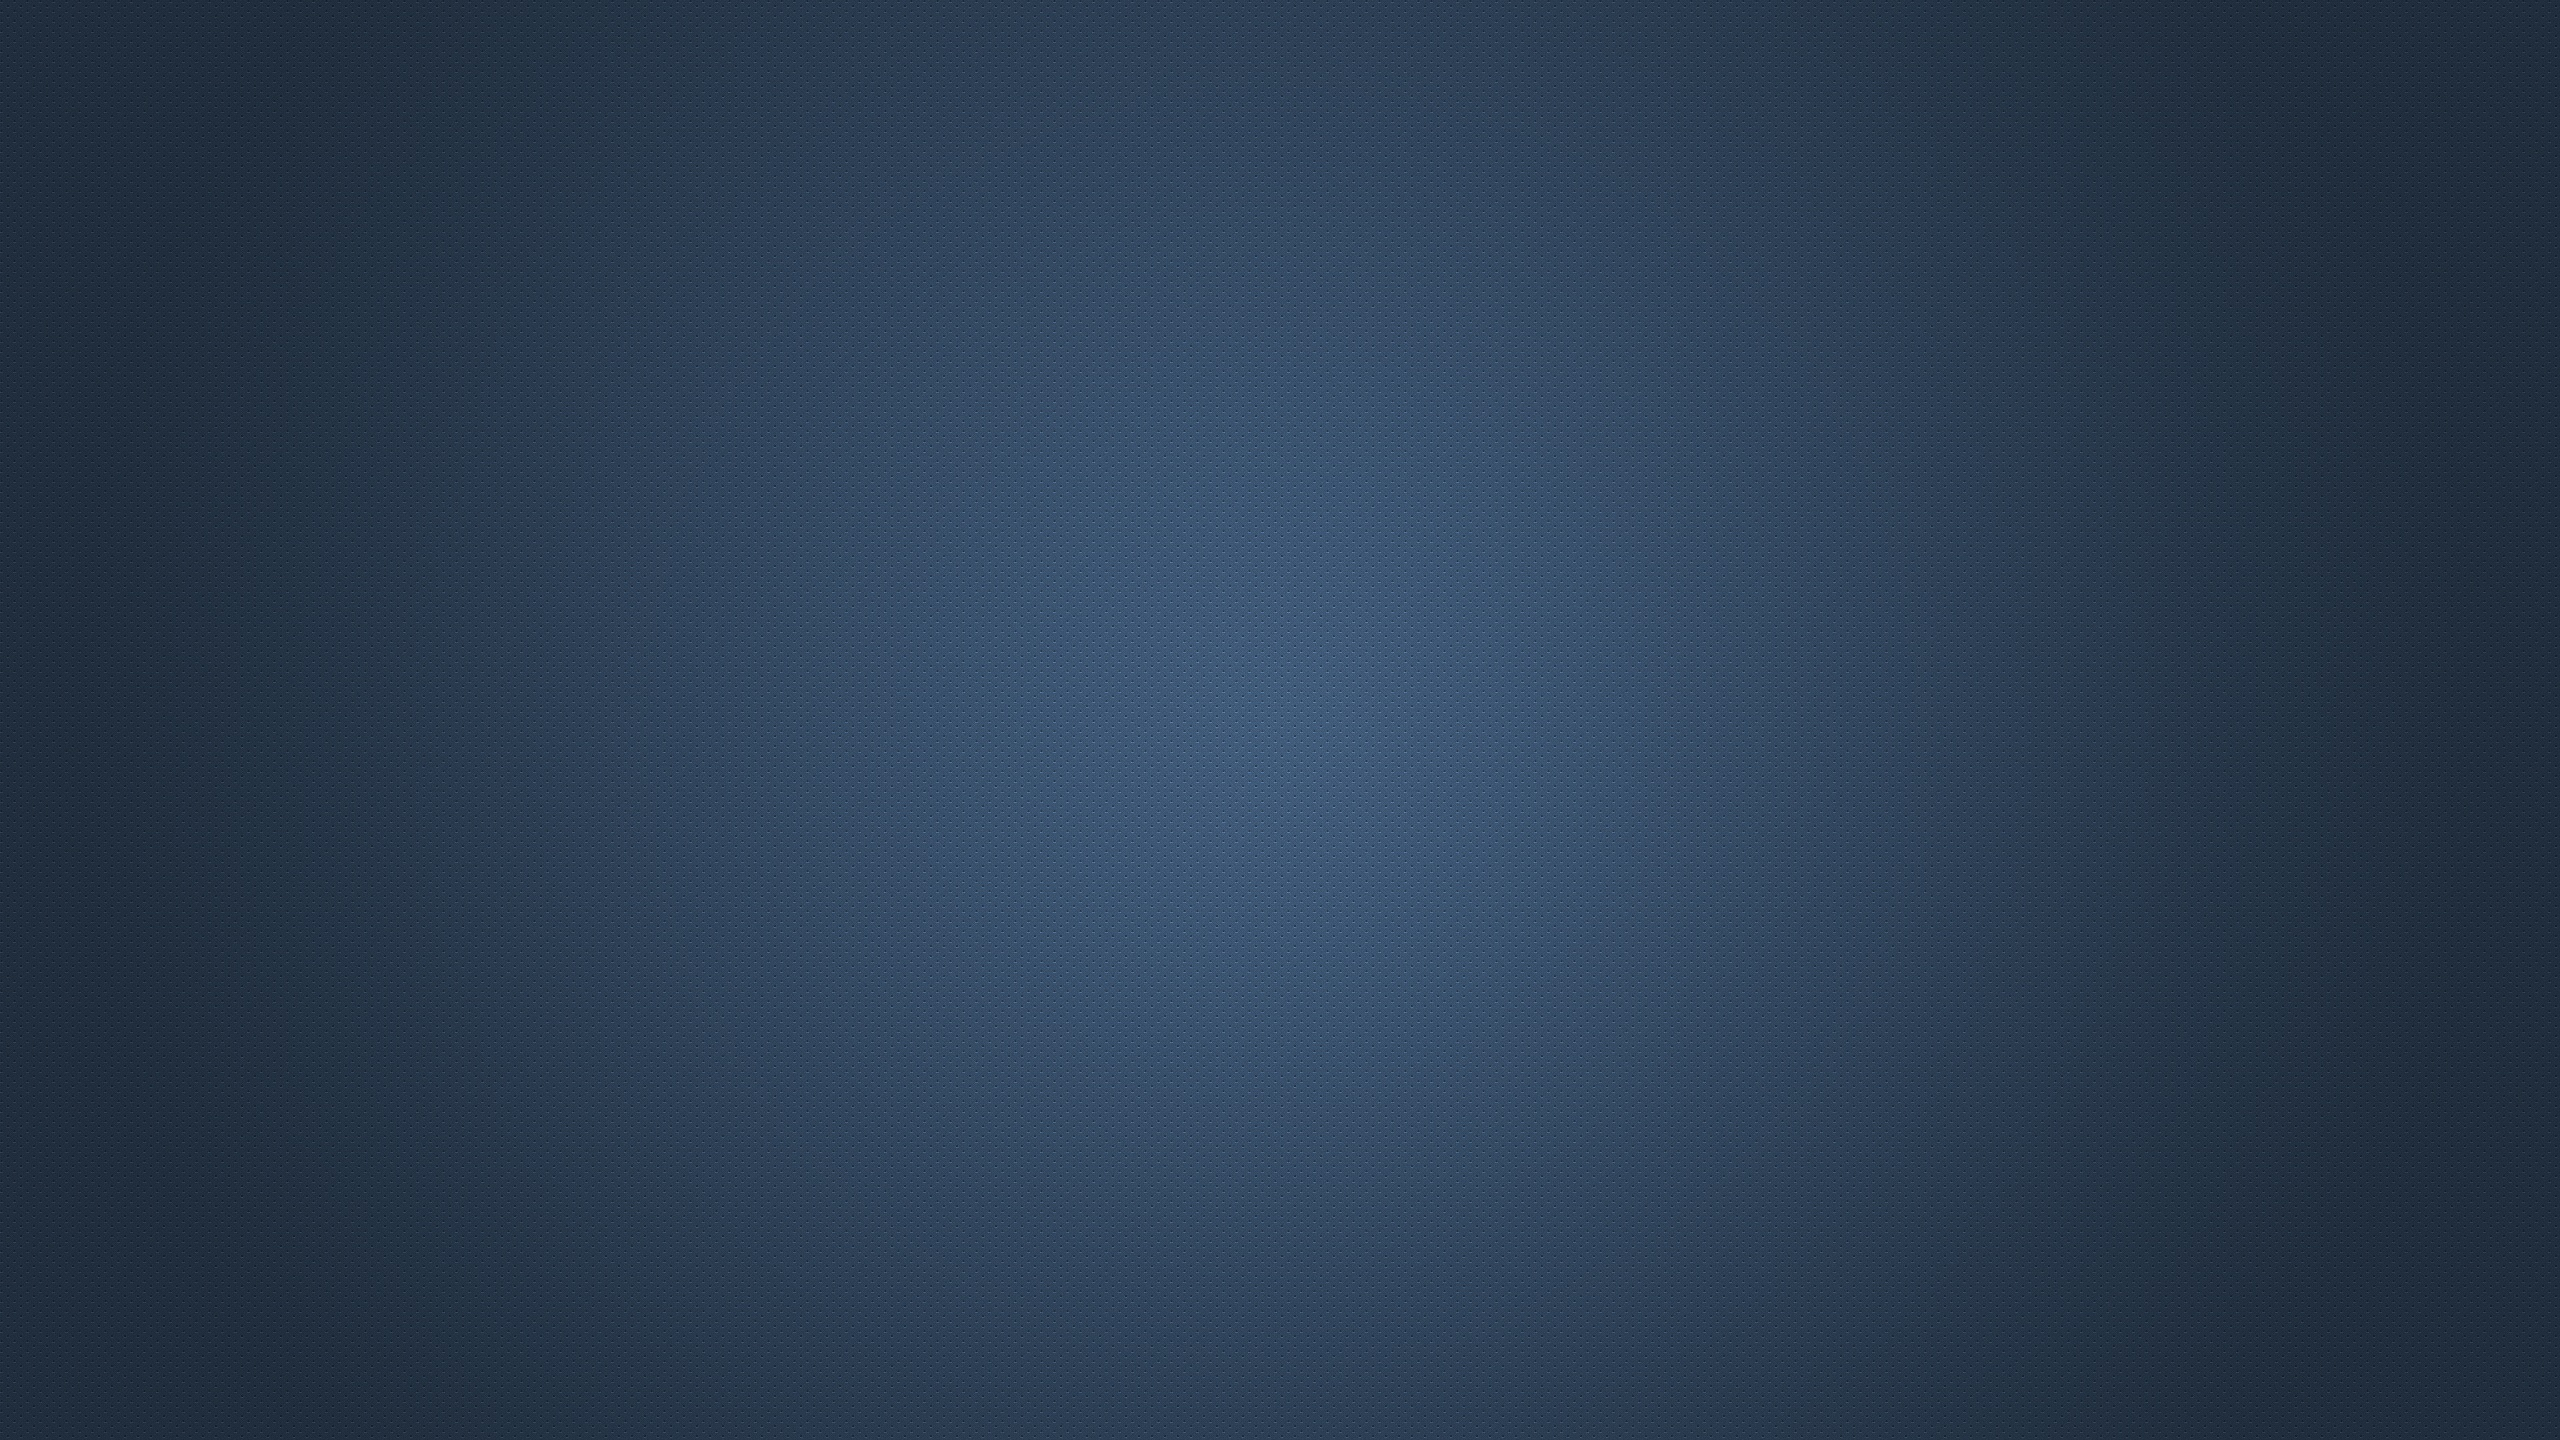 wallpaper pattern dark blue